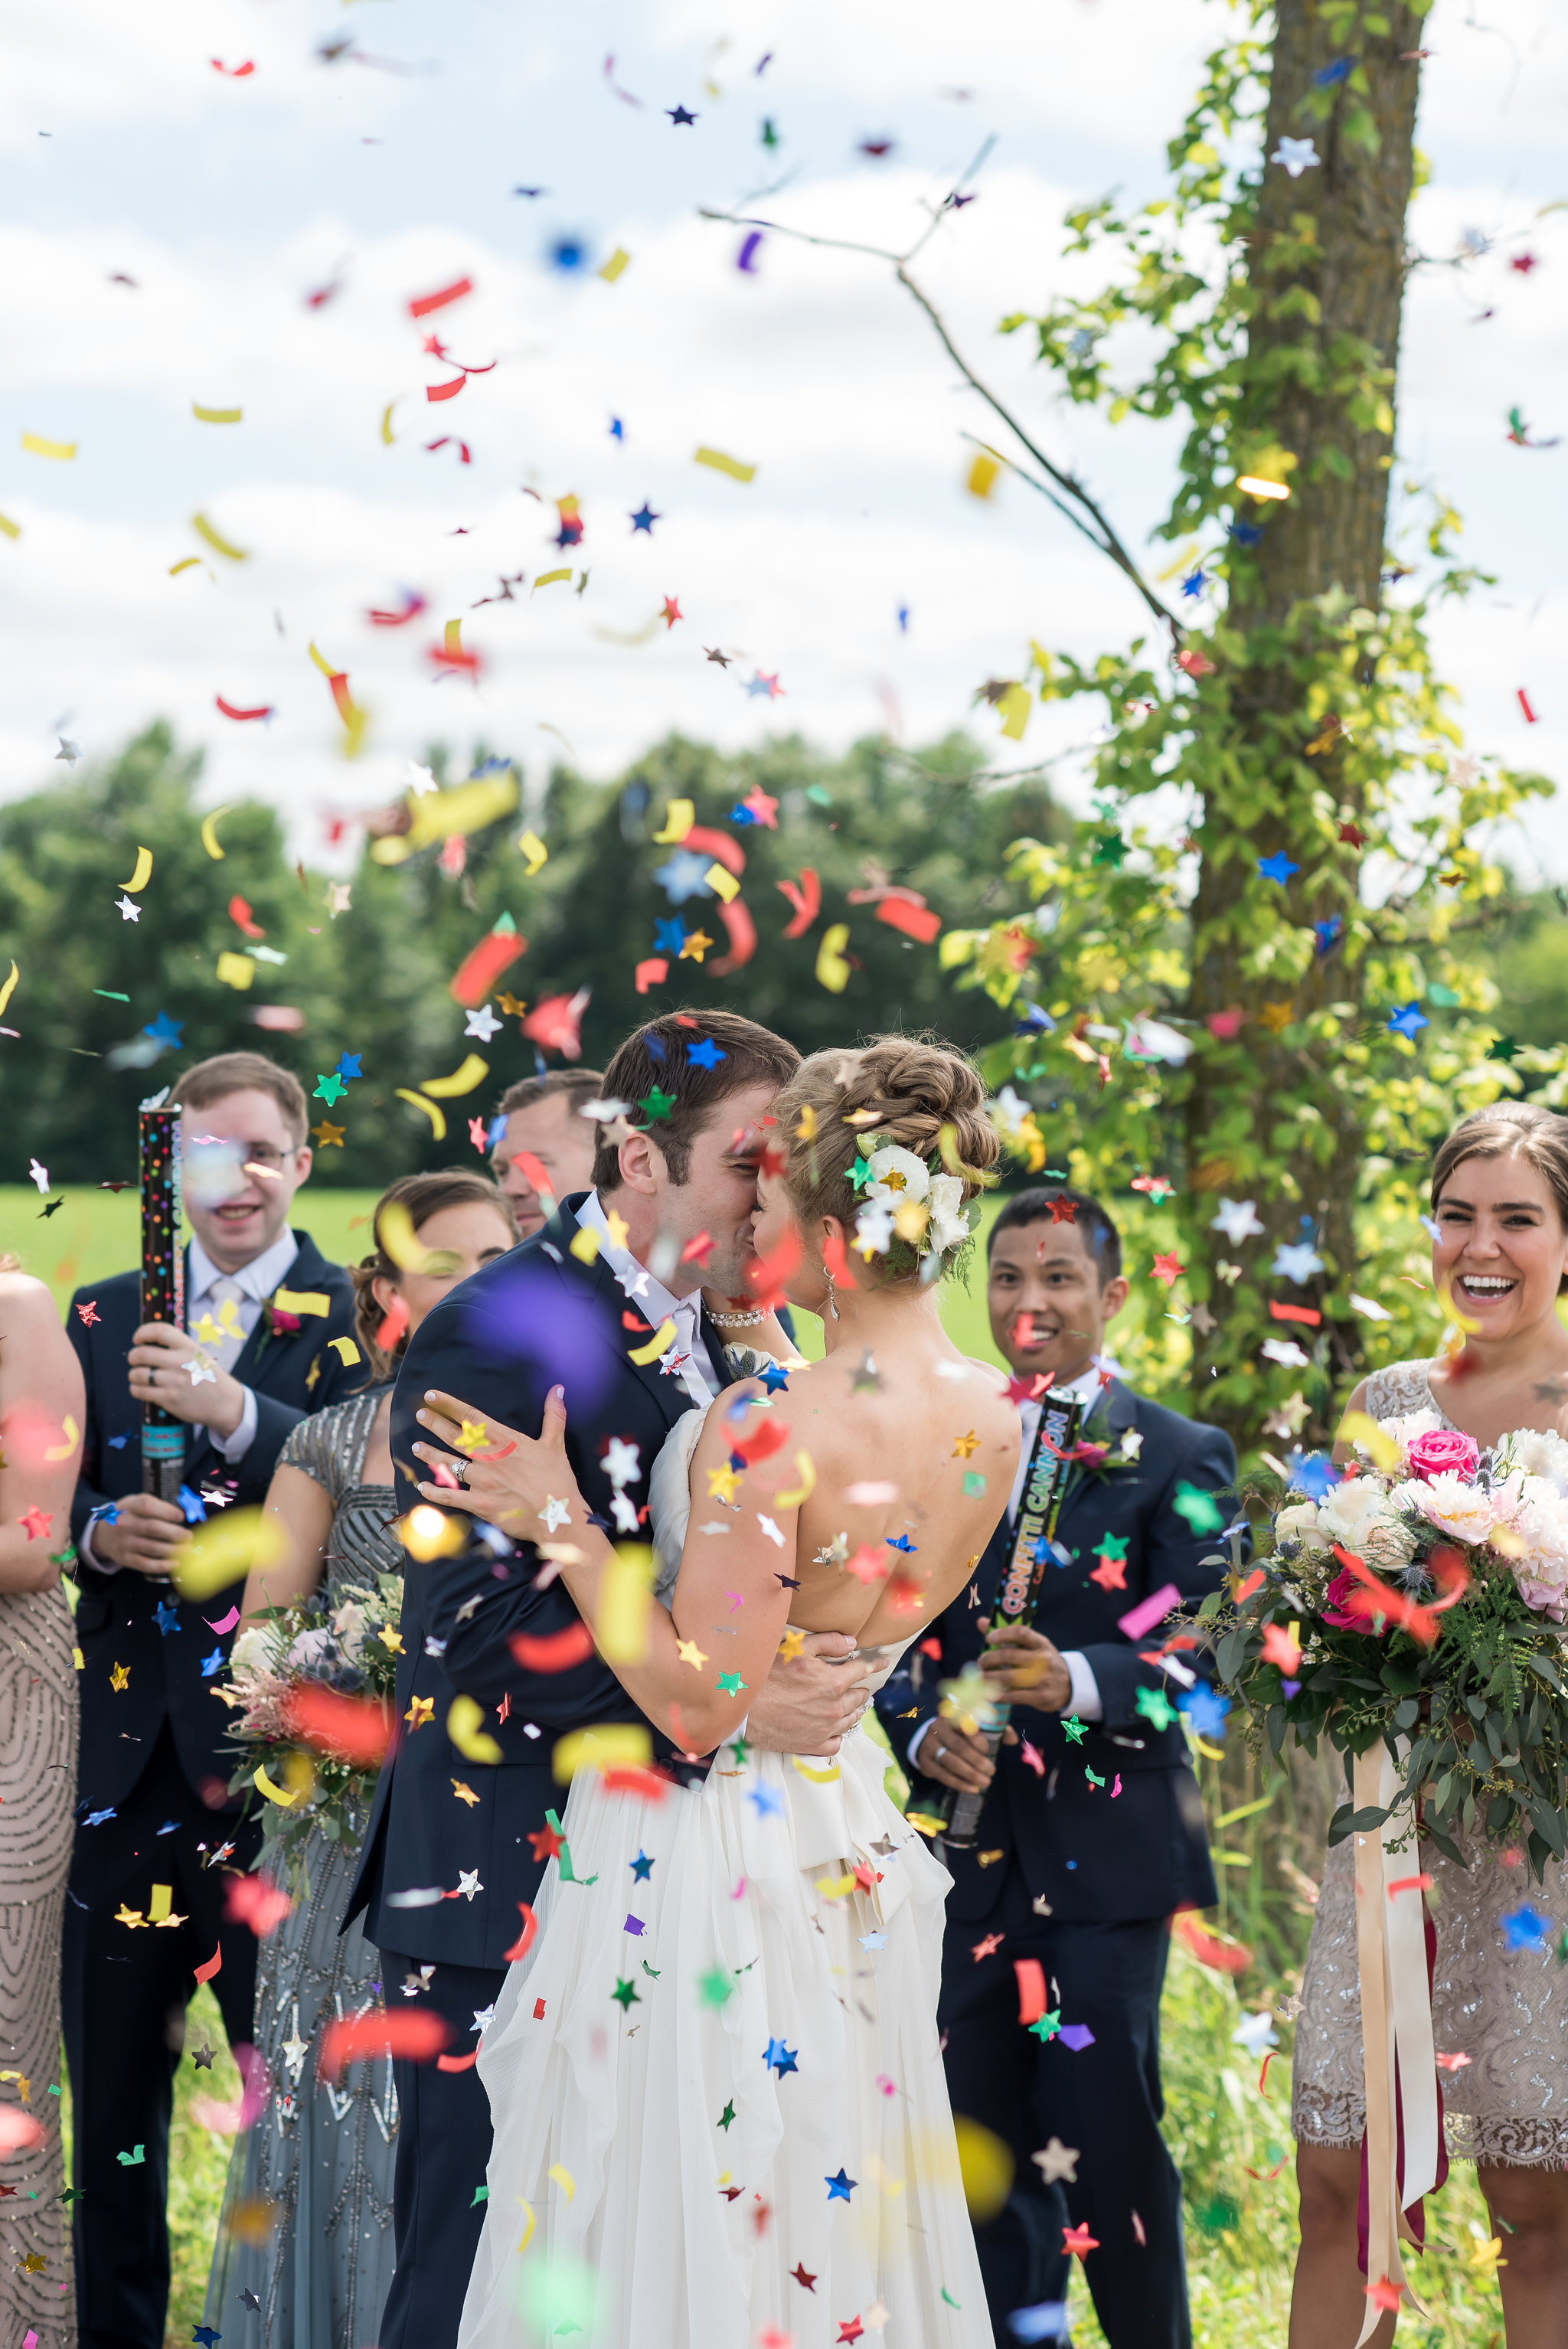 bridal party confetti picture | Kelly Birch Photography :: Bloom Lake Barn :: Sixpence Events Minnesota wedding planner :: A Vintage Touch Weddings :: Brett Dorian.jpg